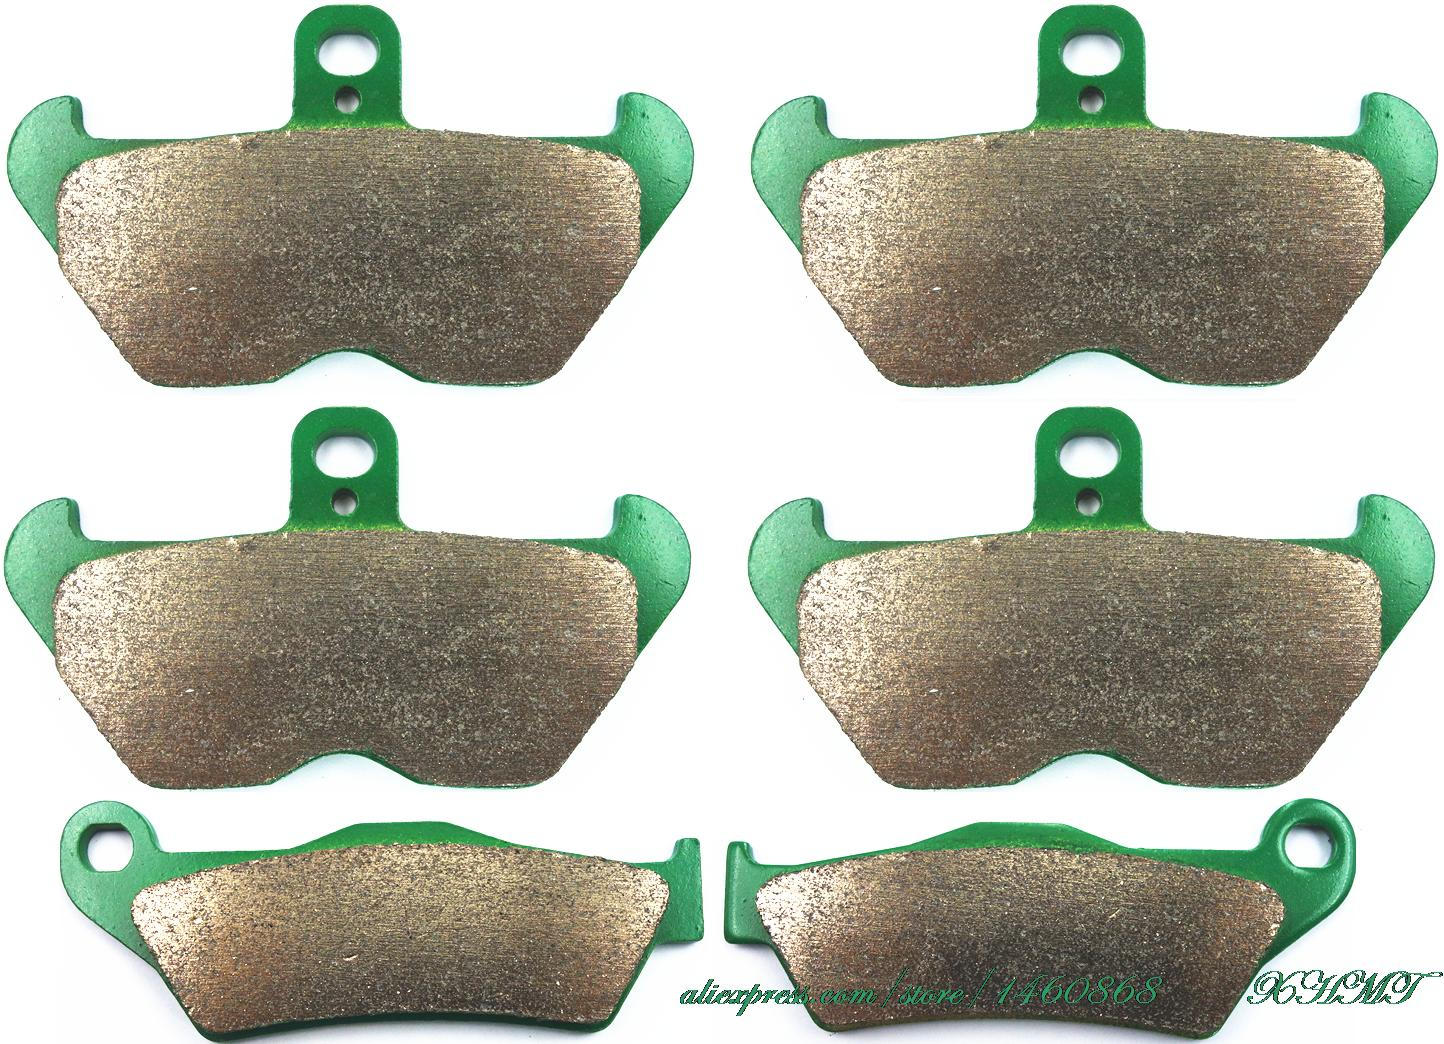 Brake Pads Set For Bmw R850c R850gs R 850 Gs C 1999 2000 / R1150gs R 1150 Gs 1998 - 2001 / R1200c R 1200 C 1997 - 2000